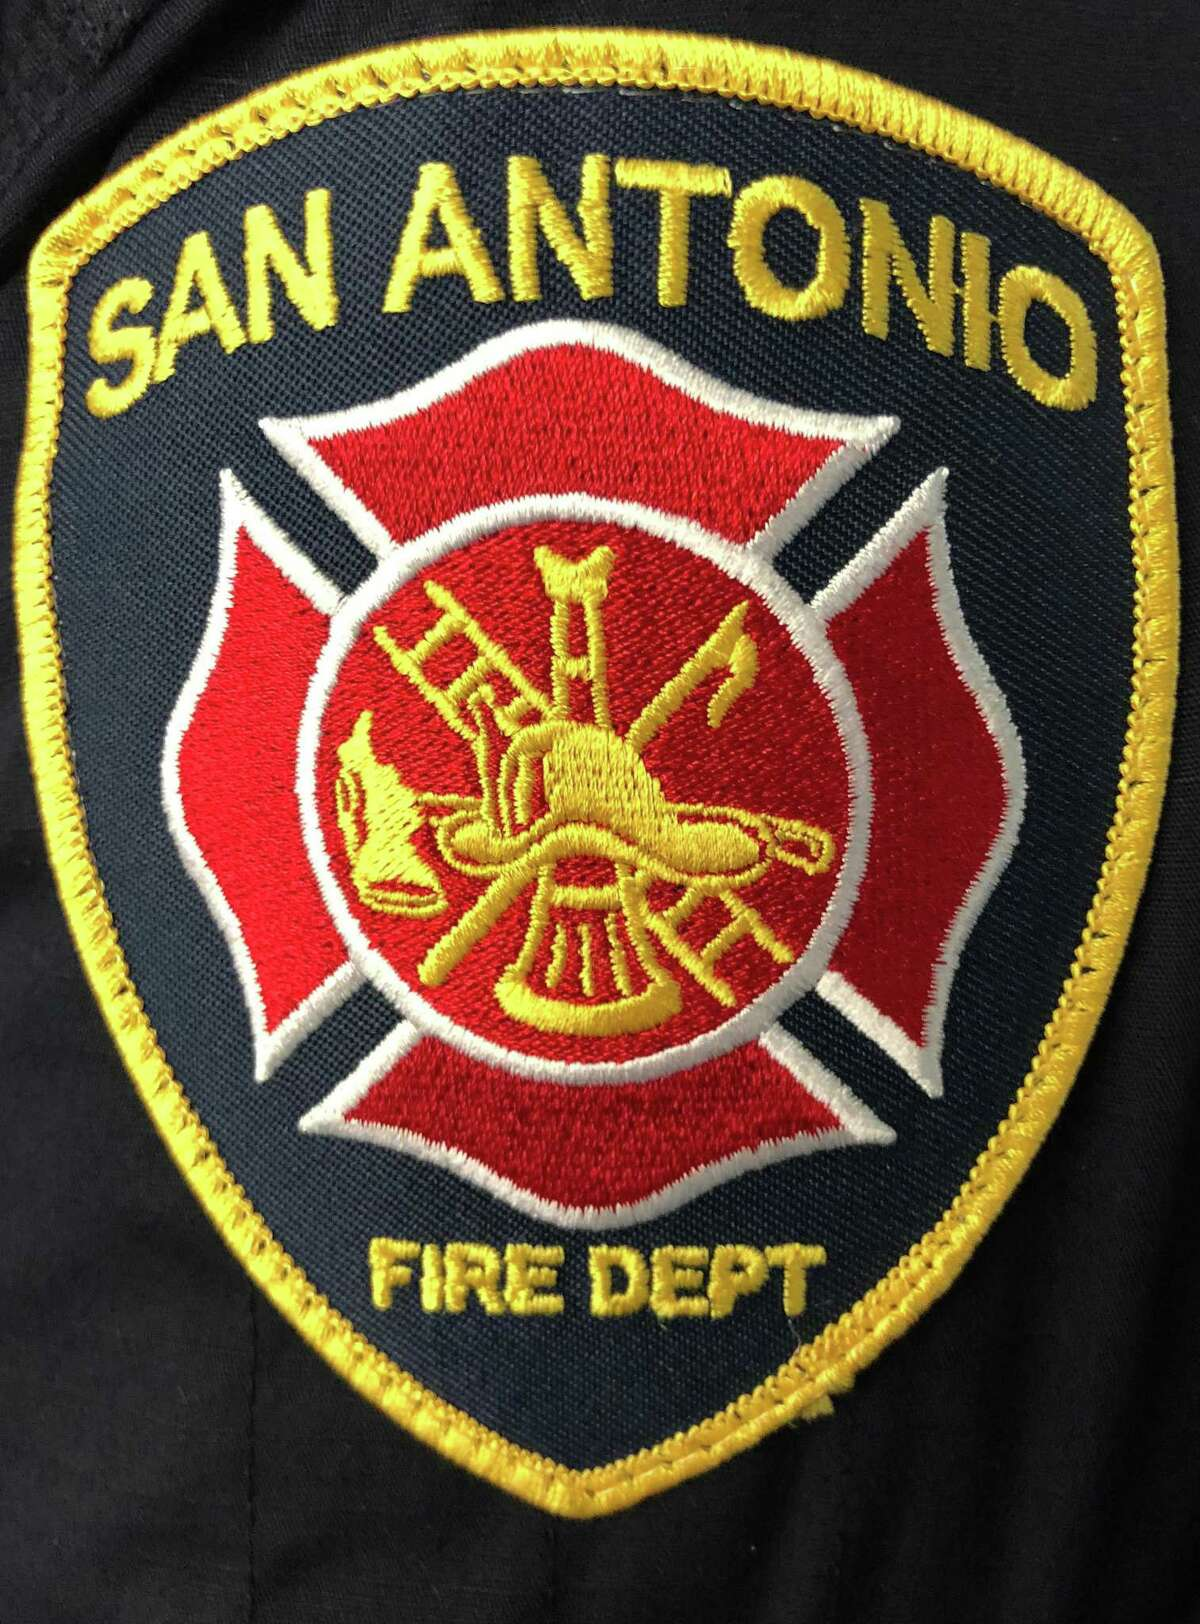 The Official San Antonio Fire Department patch.